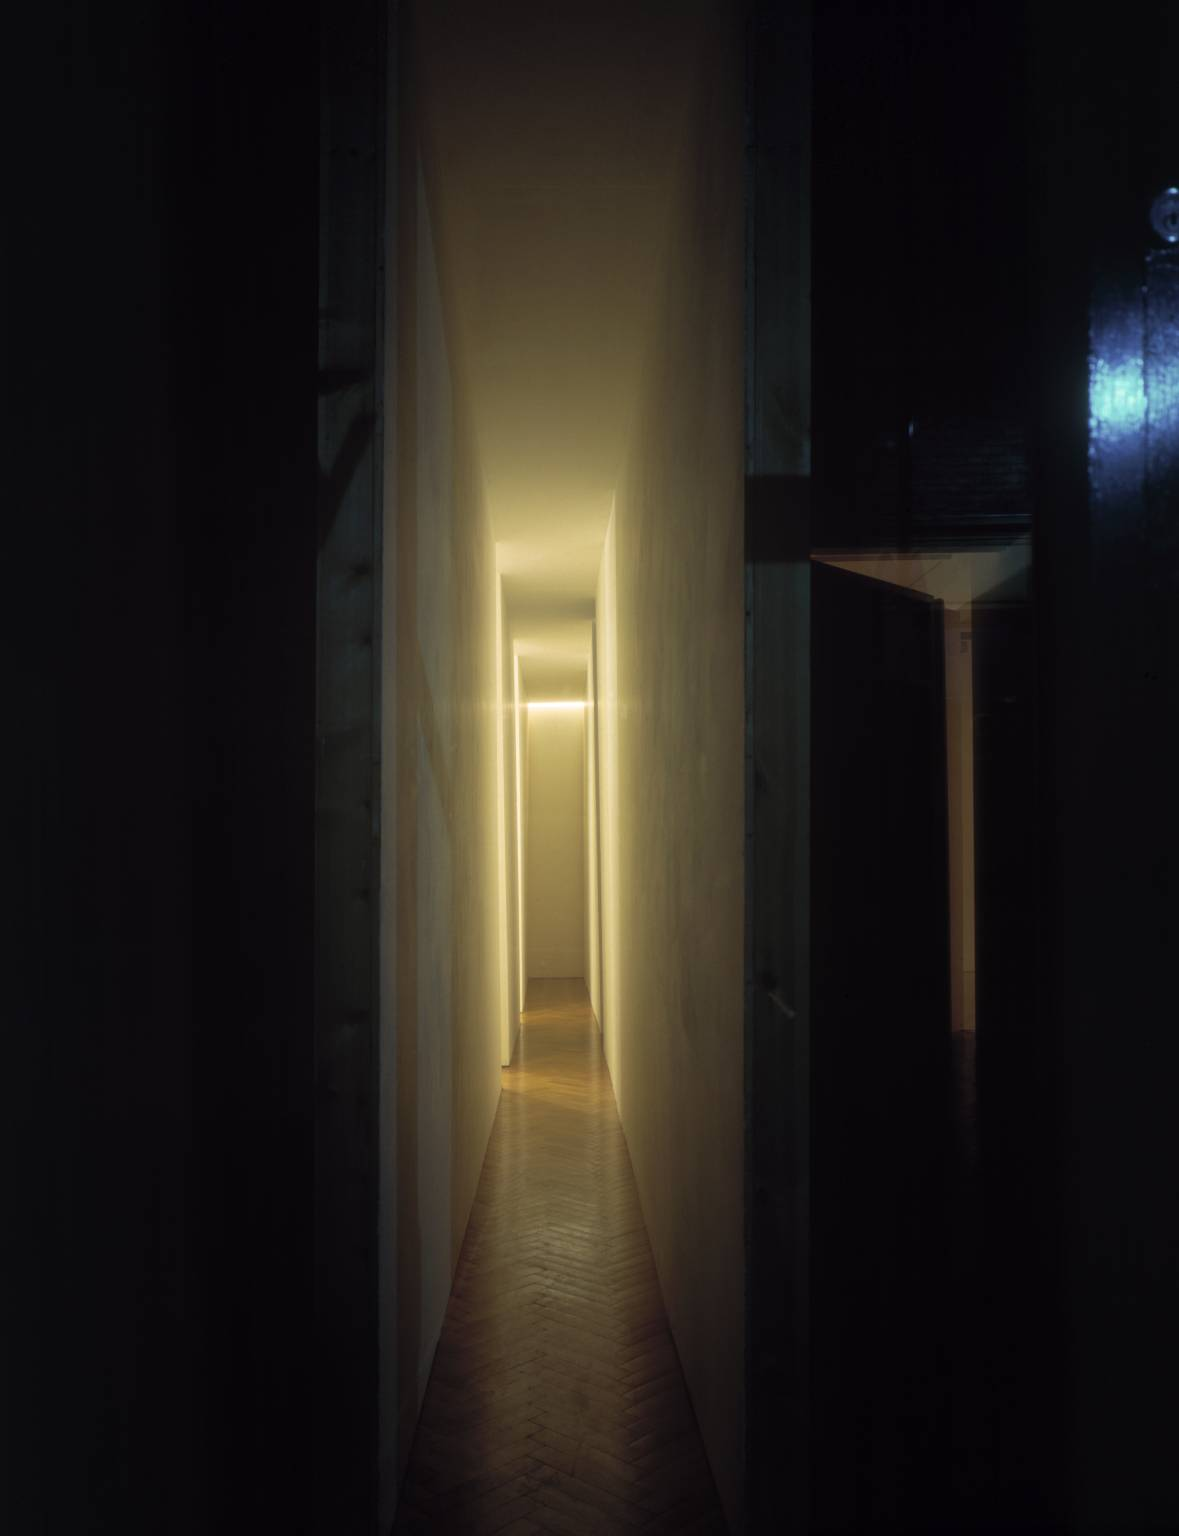 Changing Light Corridor with Rooms (1971) by Bruce Nauman